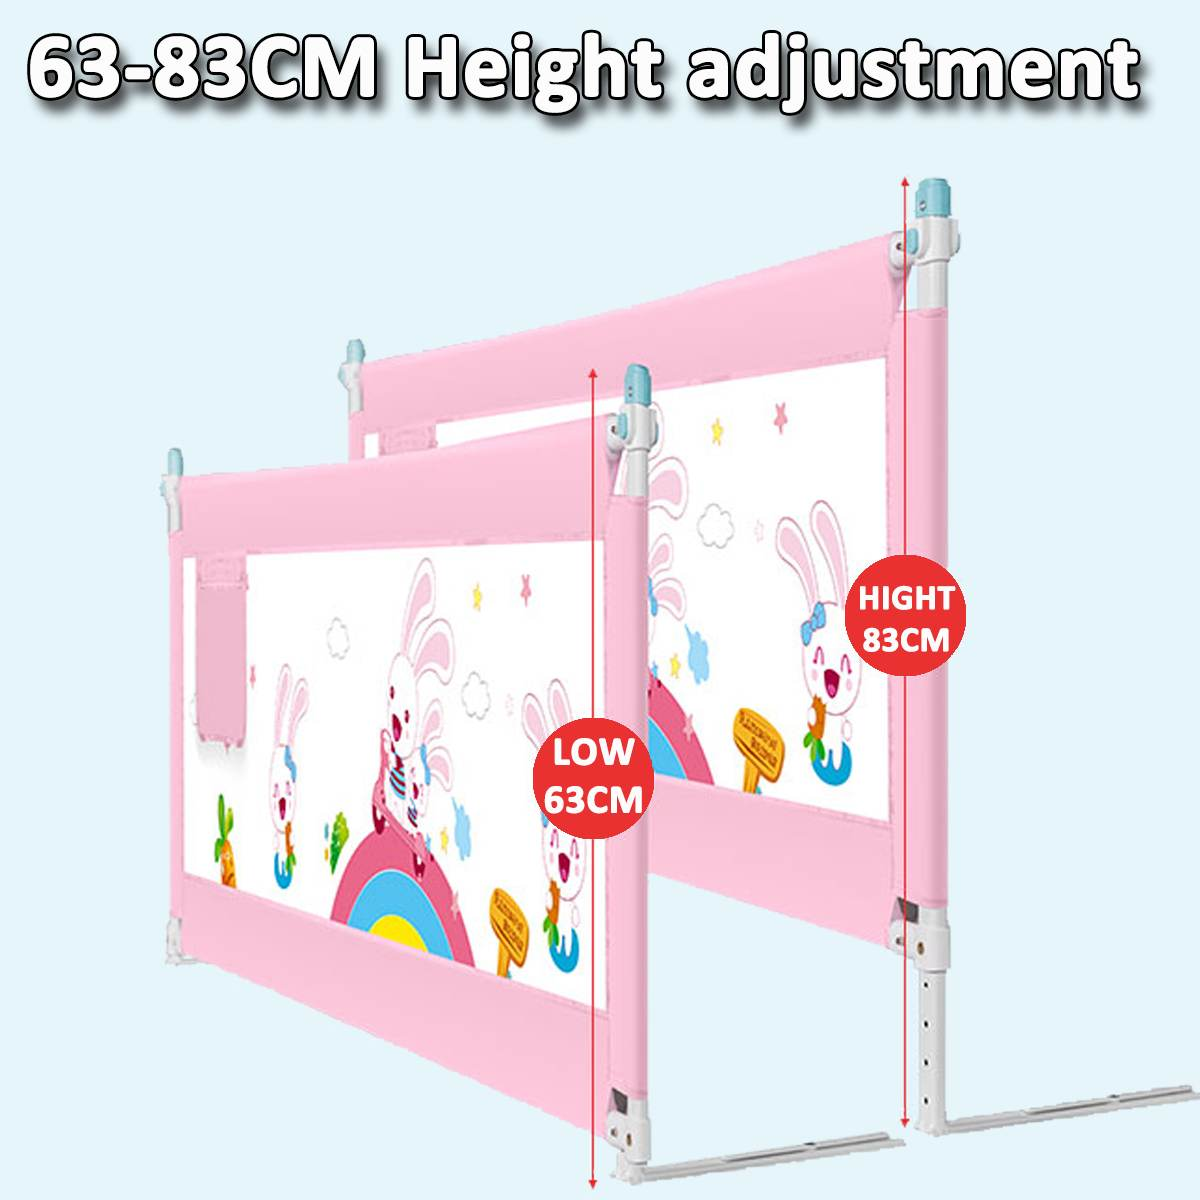 63 to 83 cm Height Adjustable Kid Bed Guard with Foldable Railing Sleep for Baby Safety from Falling from Bed 8